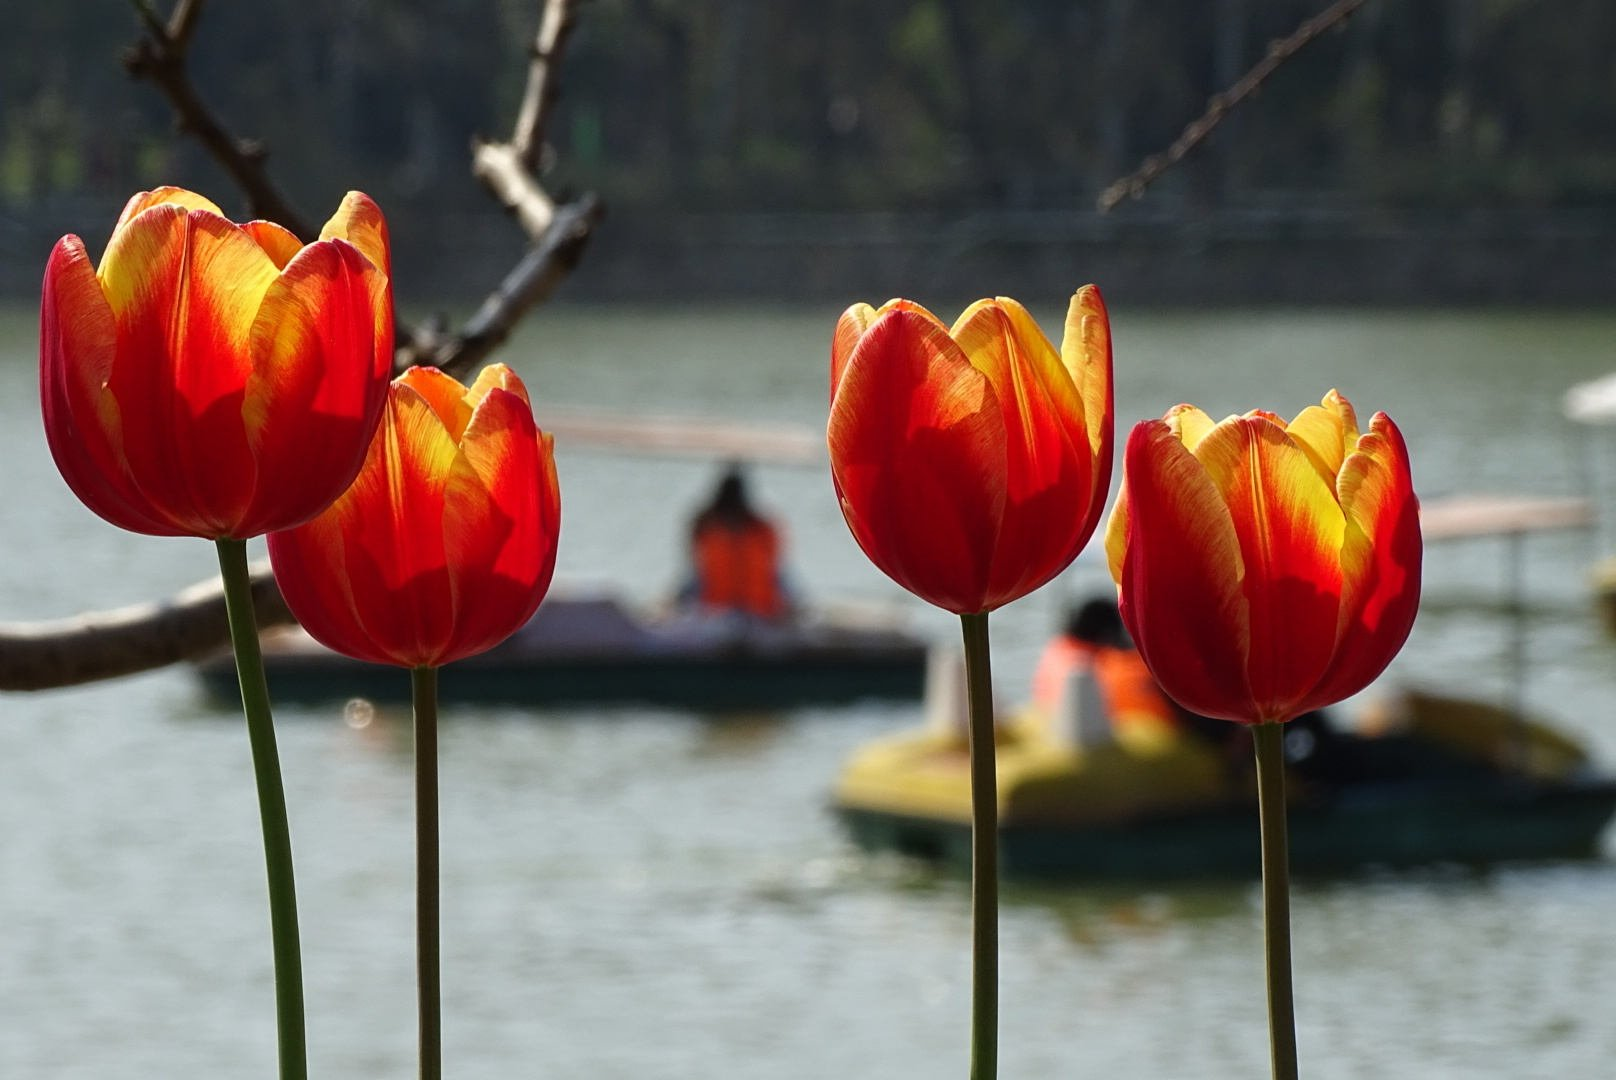 Tulips in the foreground, boaters on the West Lake in the background